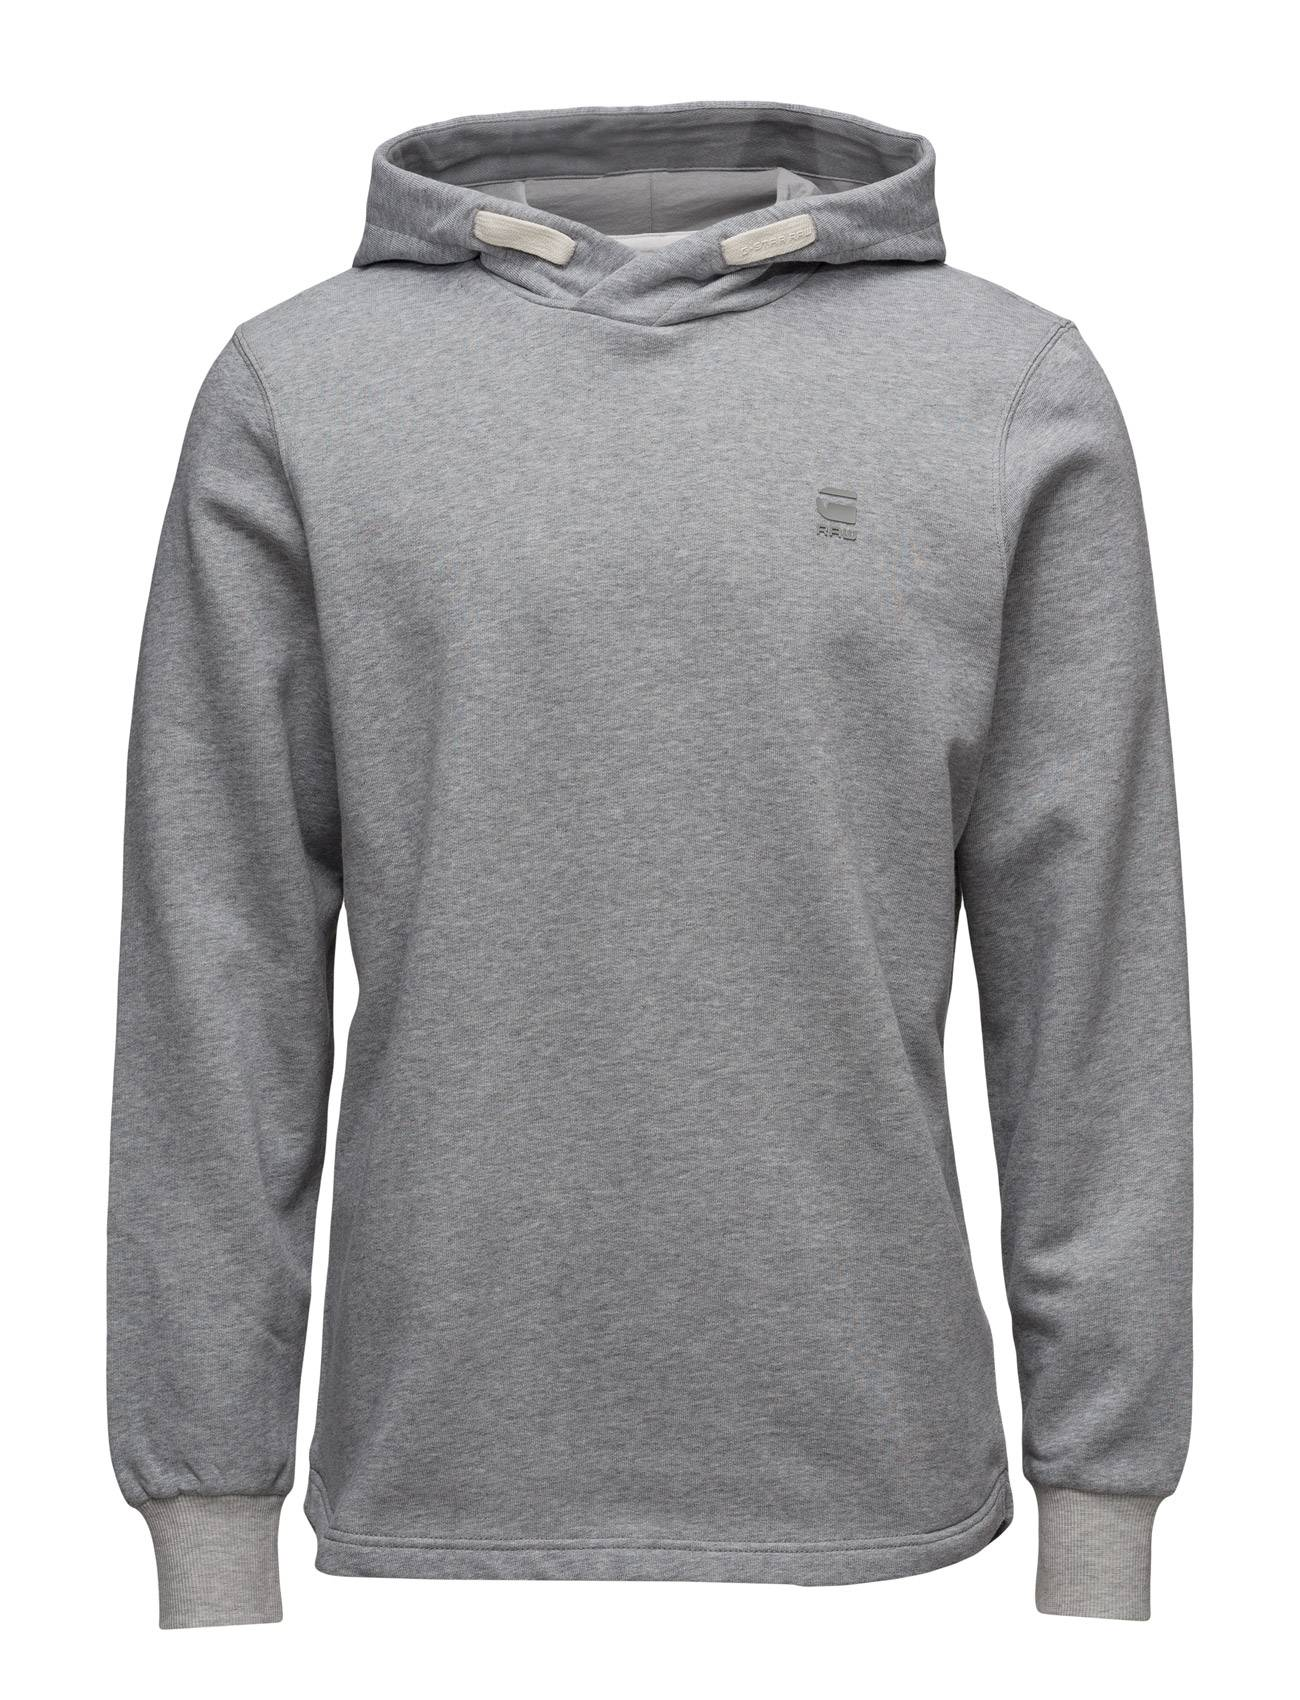 G-star Calow Hooded Sw L